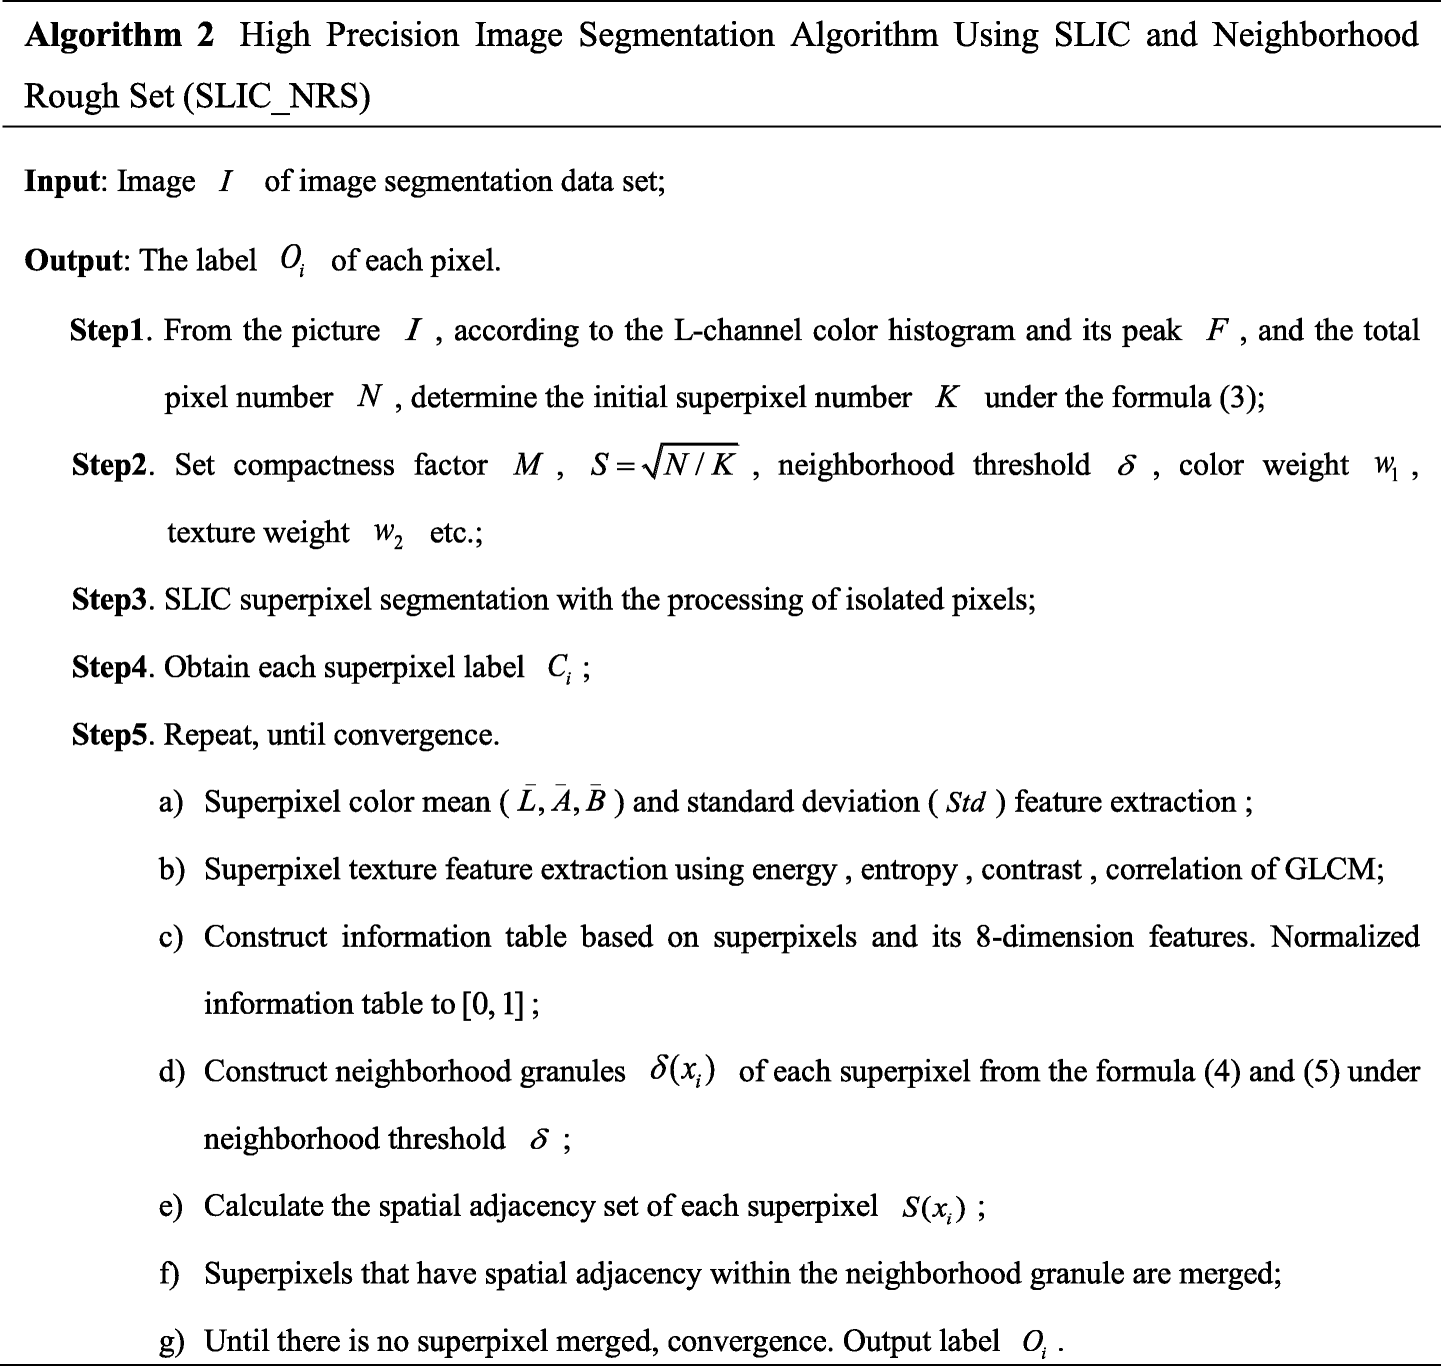 High precision image segmentation algorithm using SLIC and